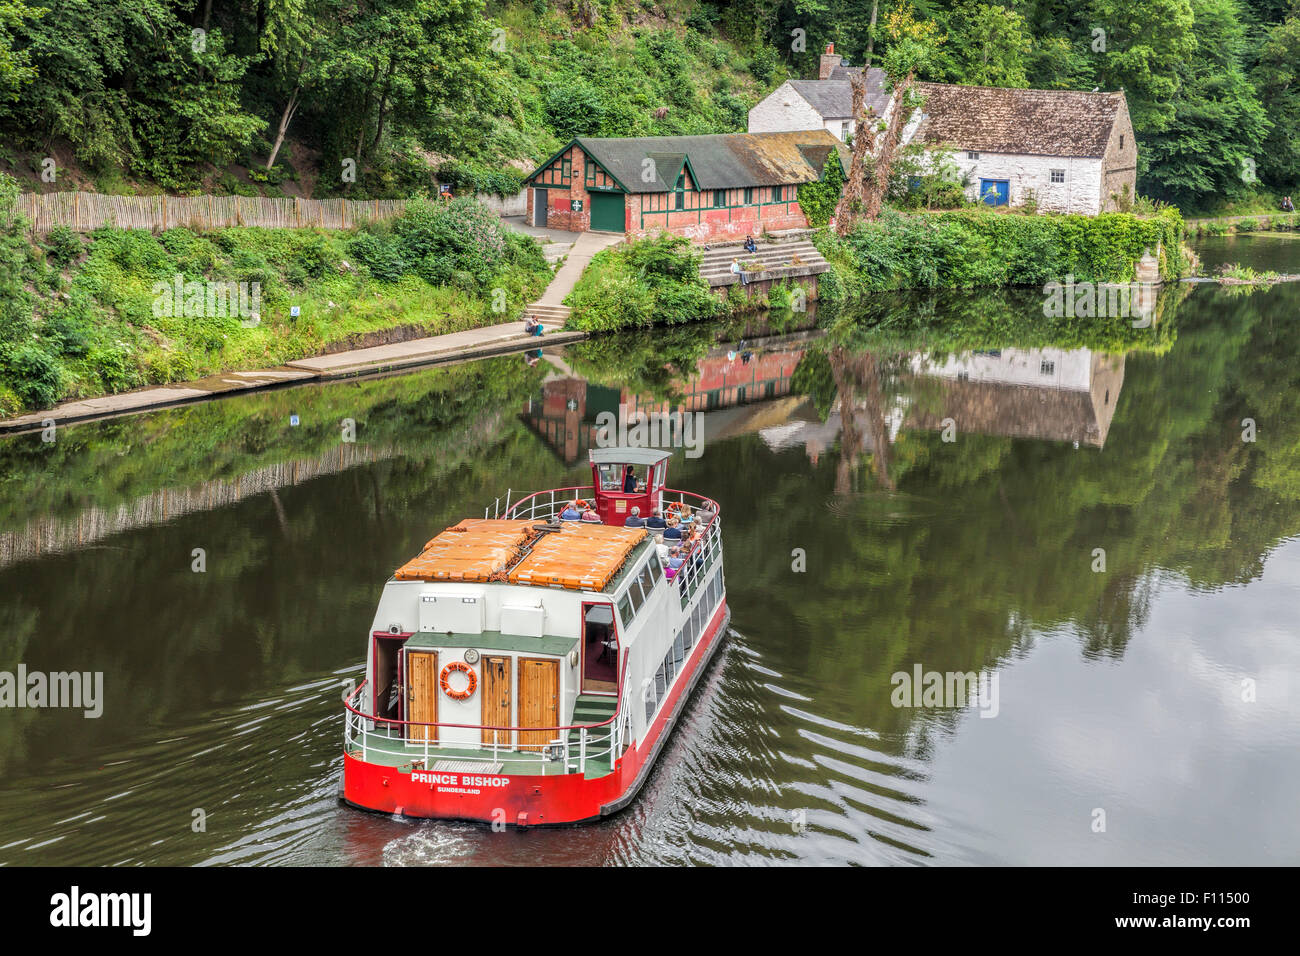 Pleasure boat on the River Wear in Durham turns as it reaches the weir taken from Prebends Bridge Stock Photo